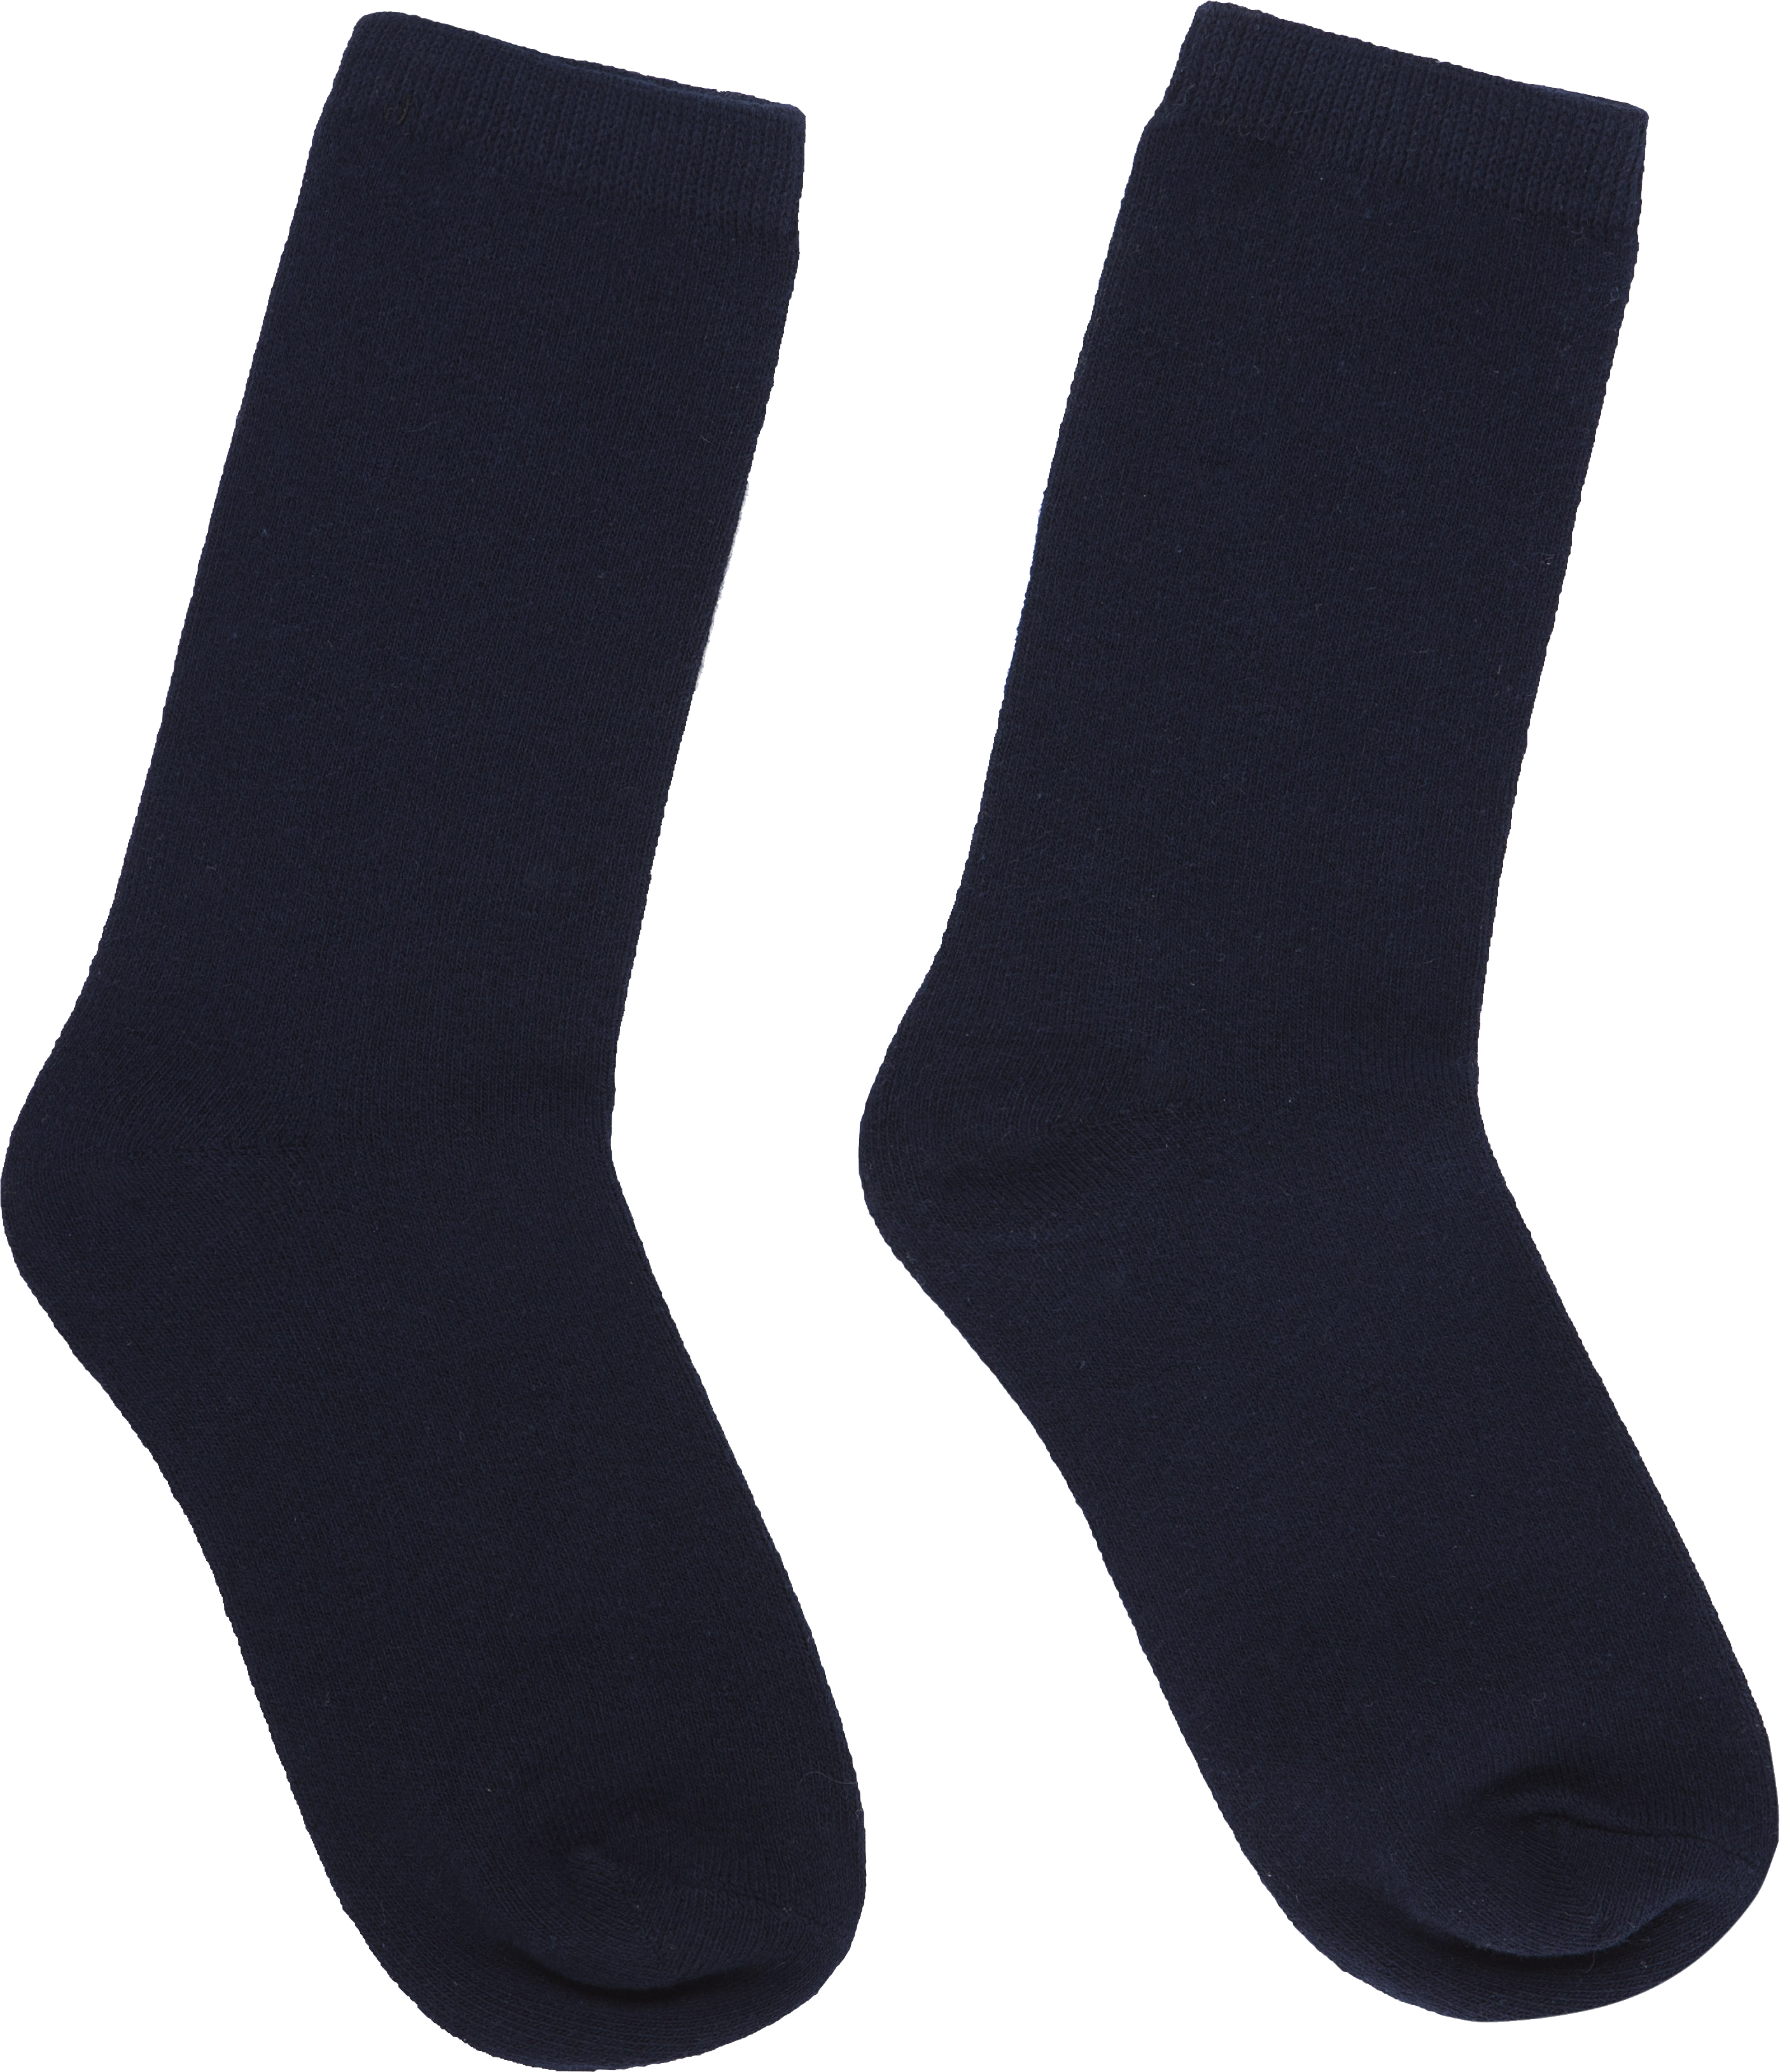 Purple clipart socks. In png web icons